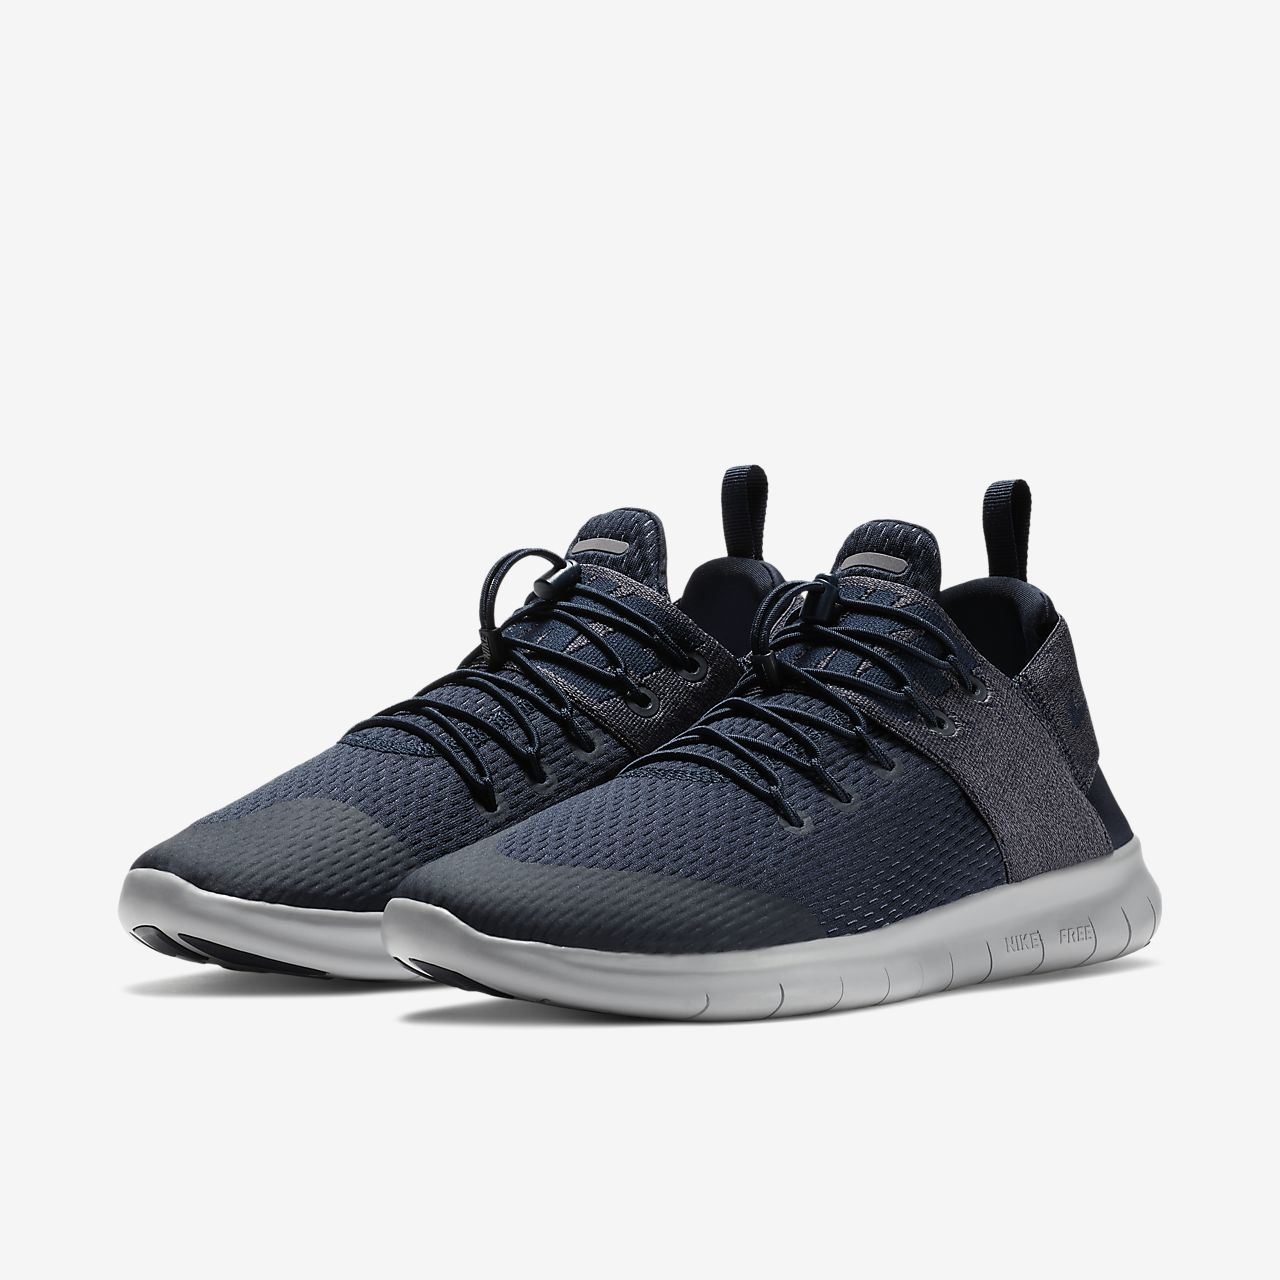 ... Nike Free RN Commuter 2017 Men's Running Shoe